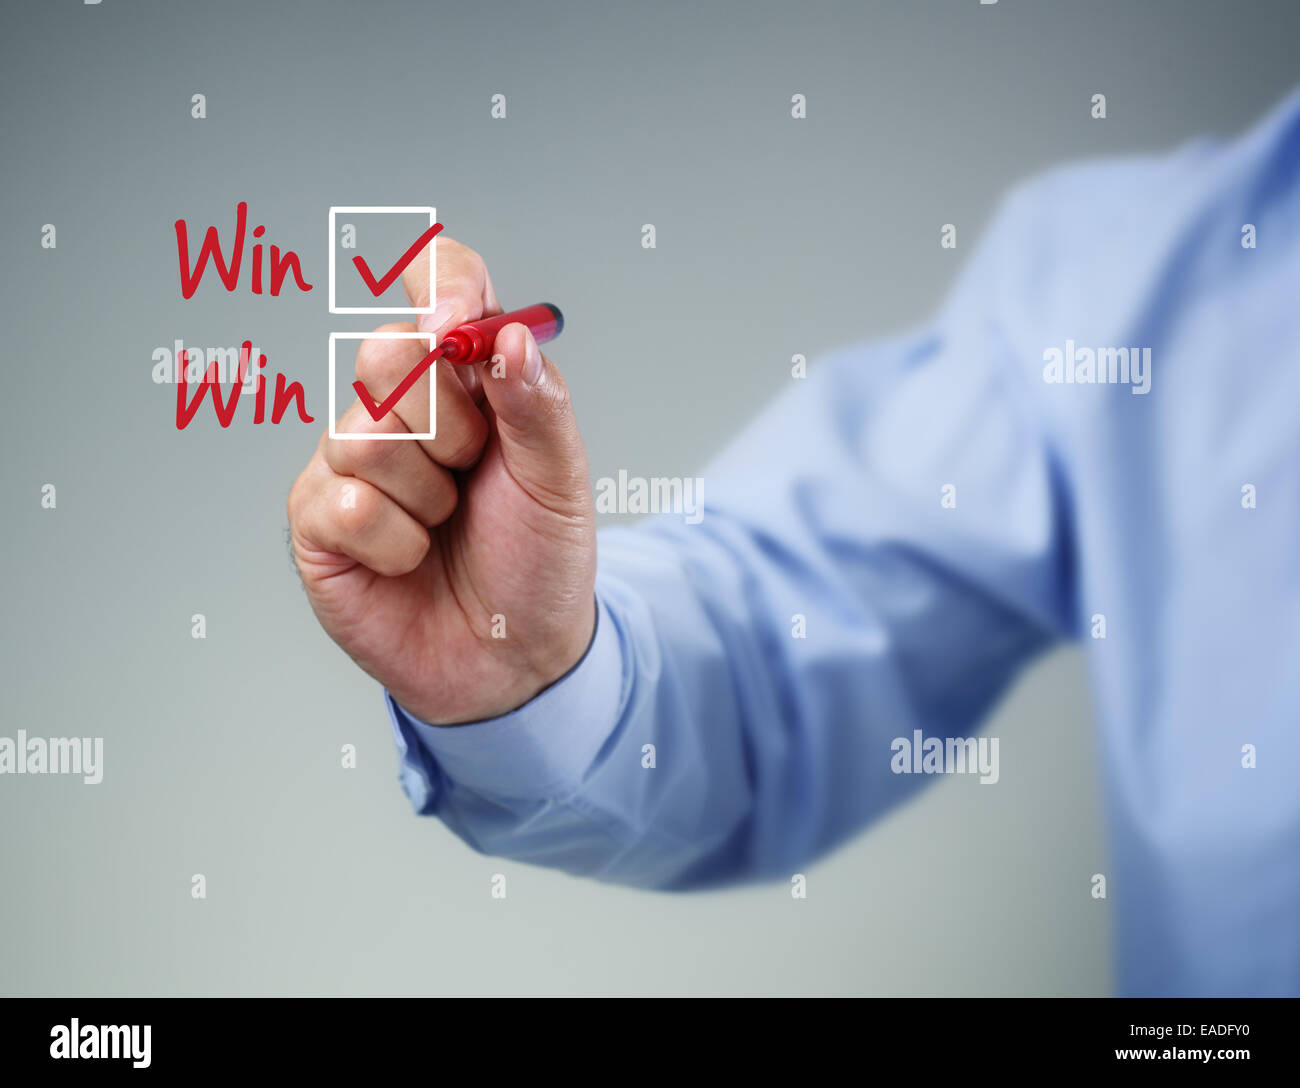 Checklist on whiteboard with businessman hand drawing win-win and a check mark in both checkbox - Stock Image